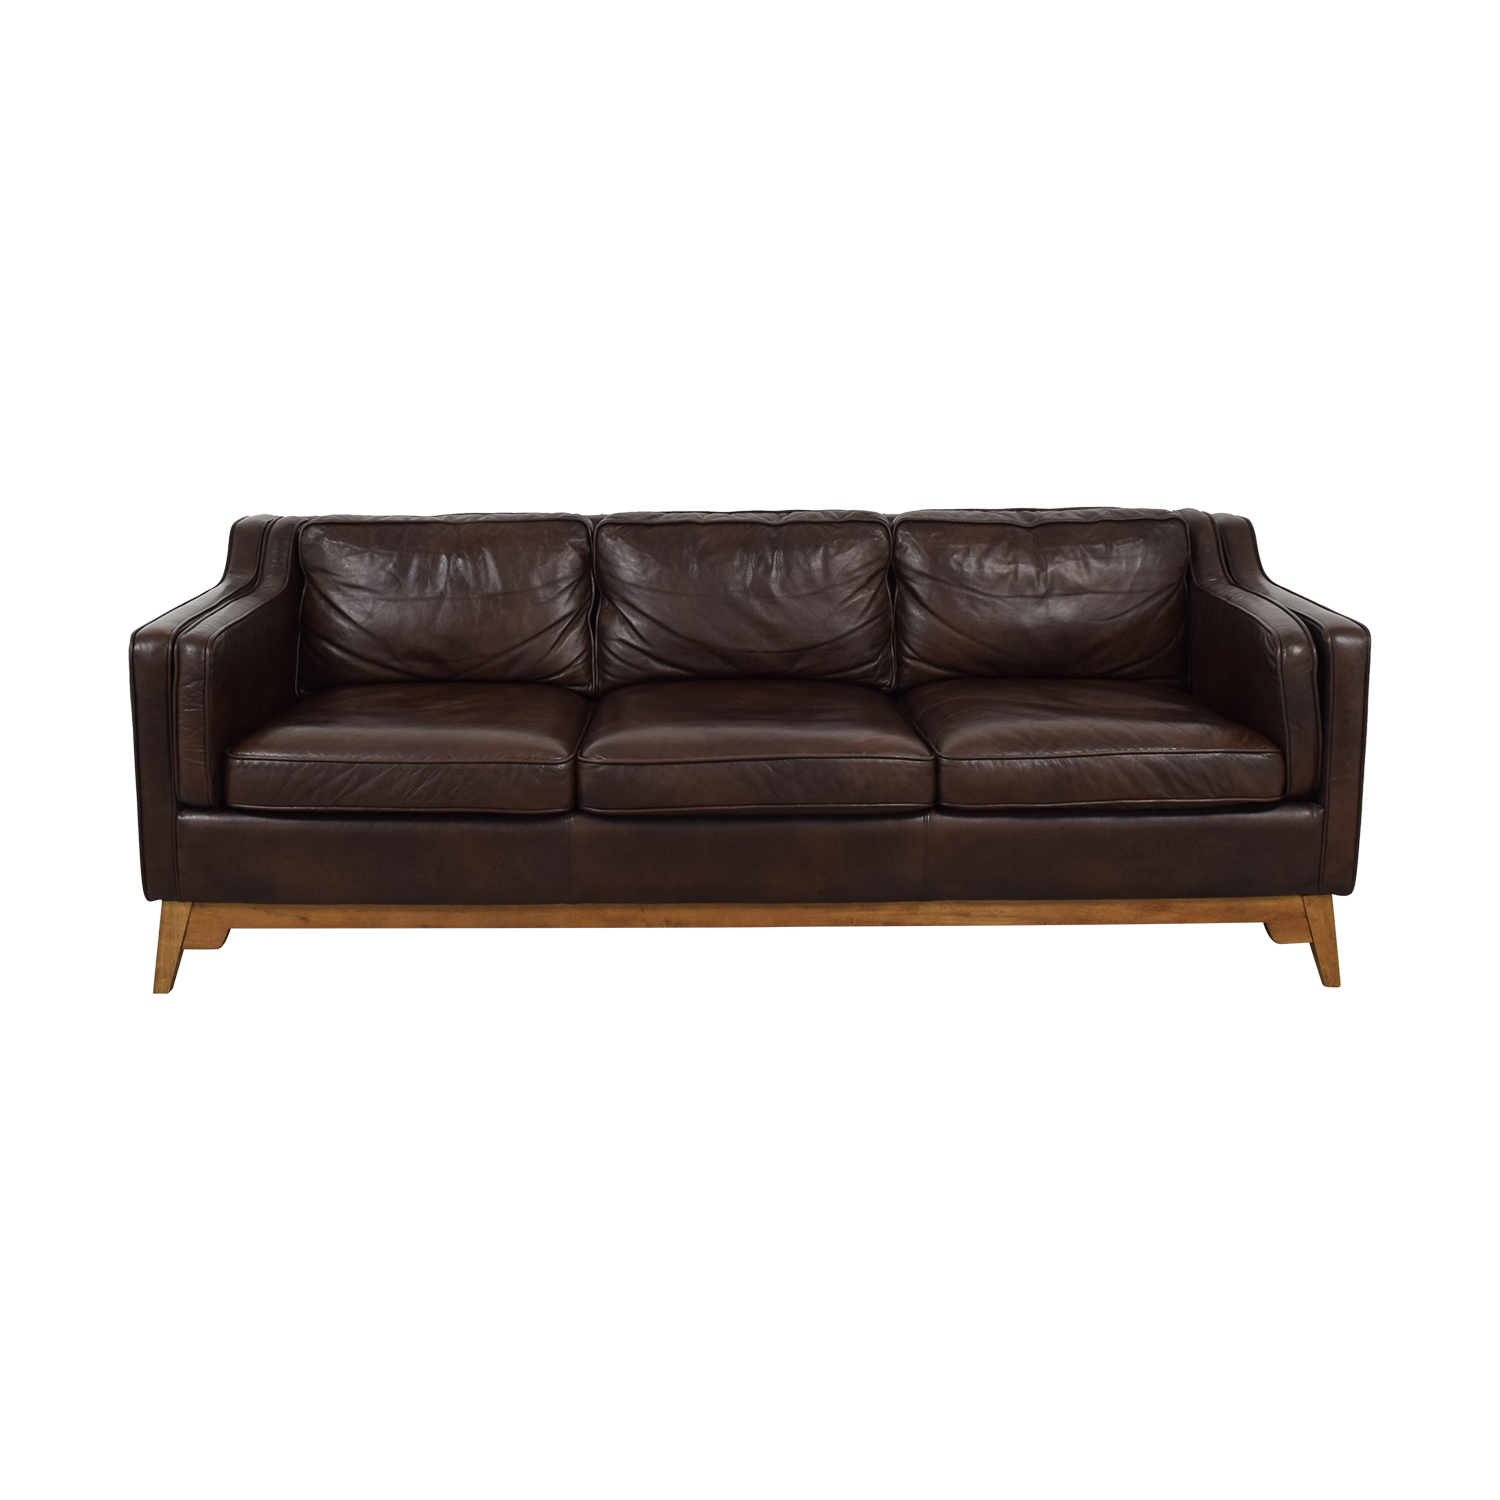 Article Article Worthington Oxford Brown Three-Cushion Sofa coupon